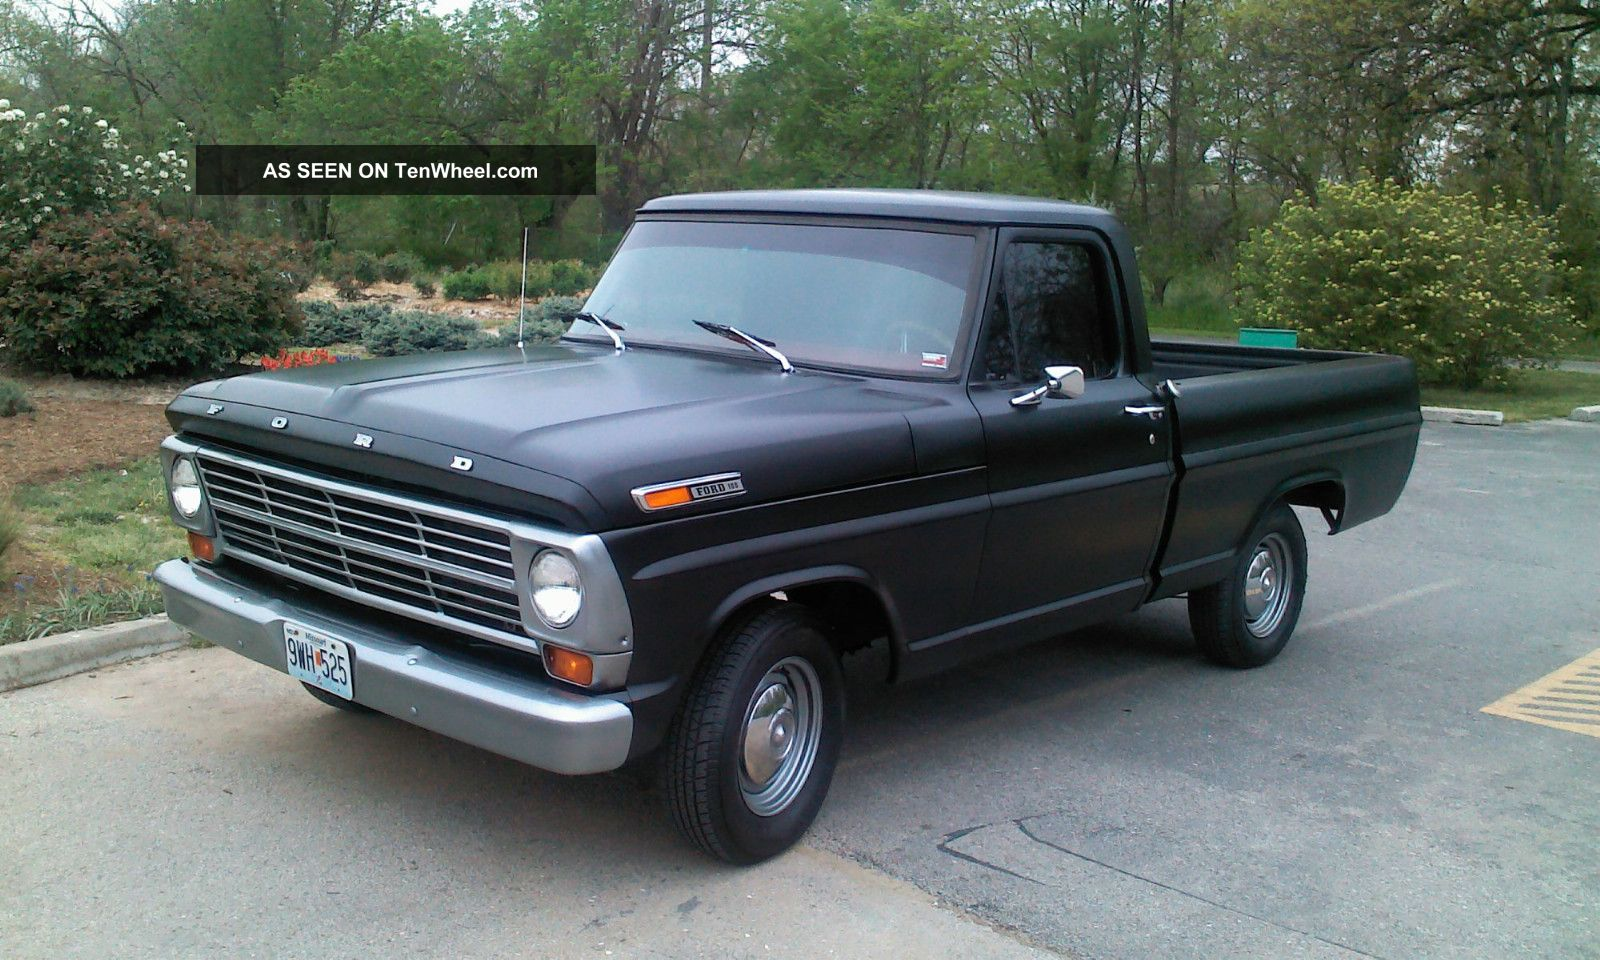 1968 Ford F - 100 Exterior Satin Black / Gun Metal Grey Interior Red And Black F-100 photo